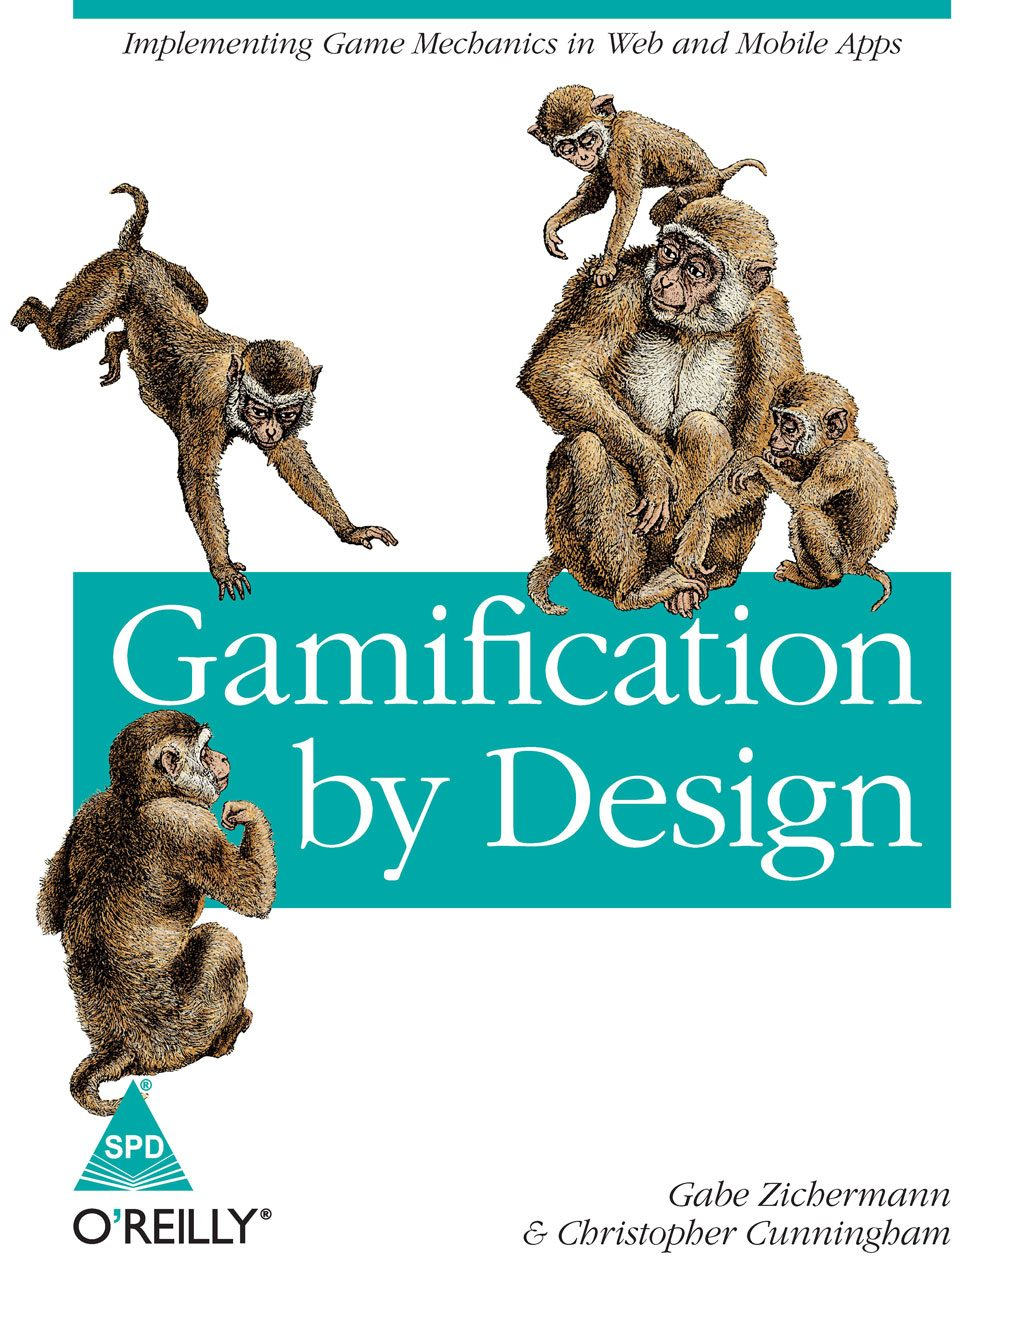 GamificationByDesign